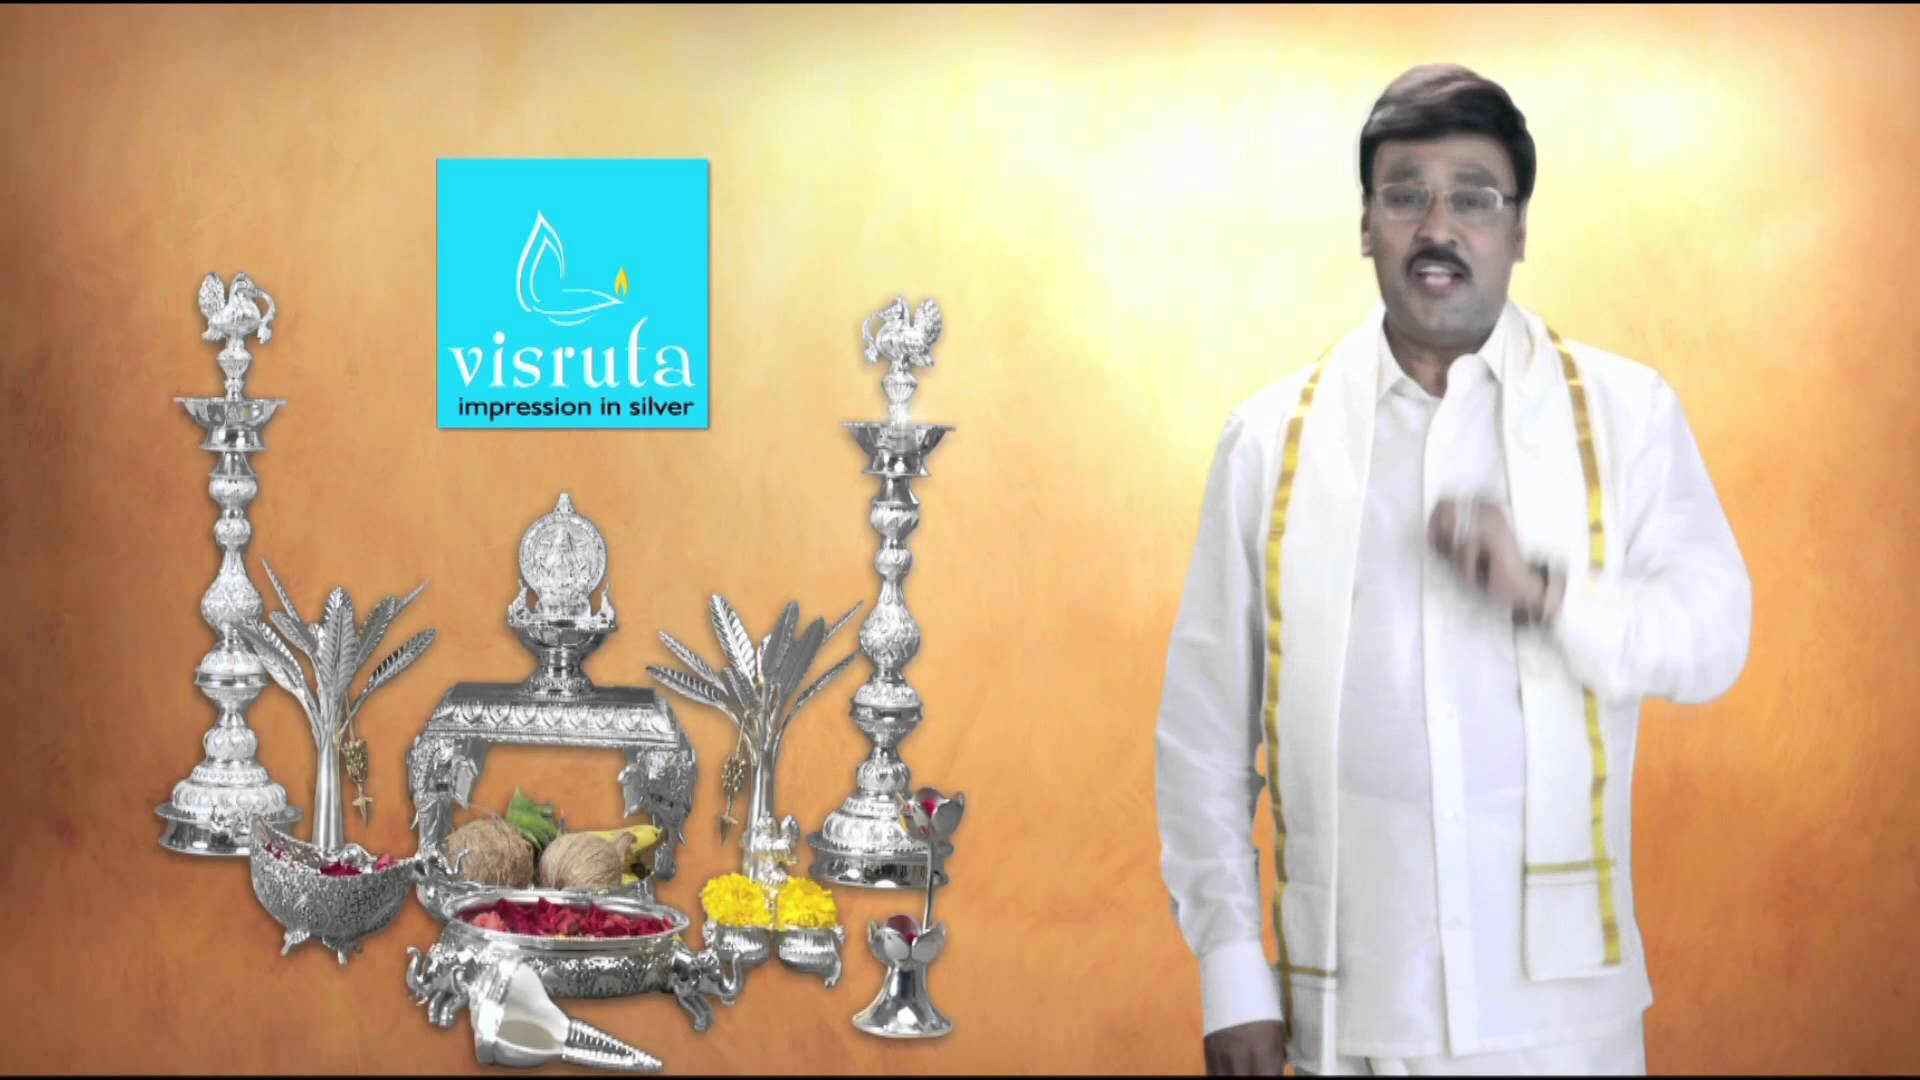 Silver Ornament Showroom in Coimbatore  Visruta Impression have huge verity of Silver Ornaments with creative & latest designs.  For more info: 8124125125